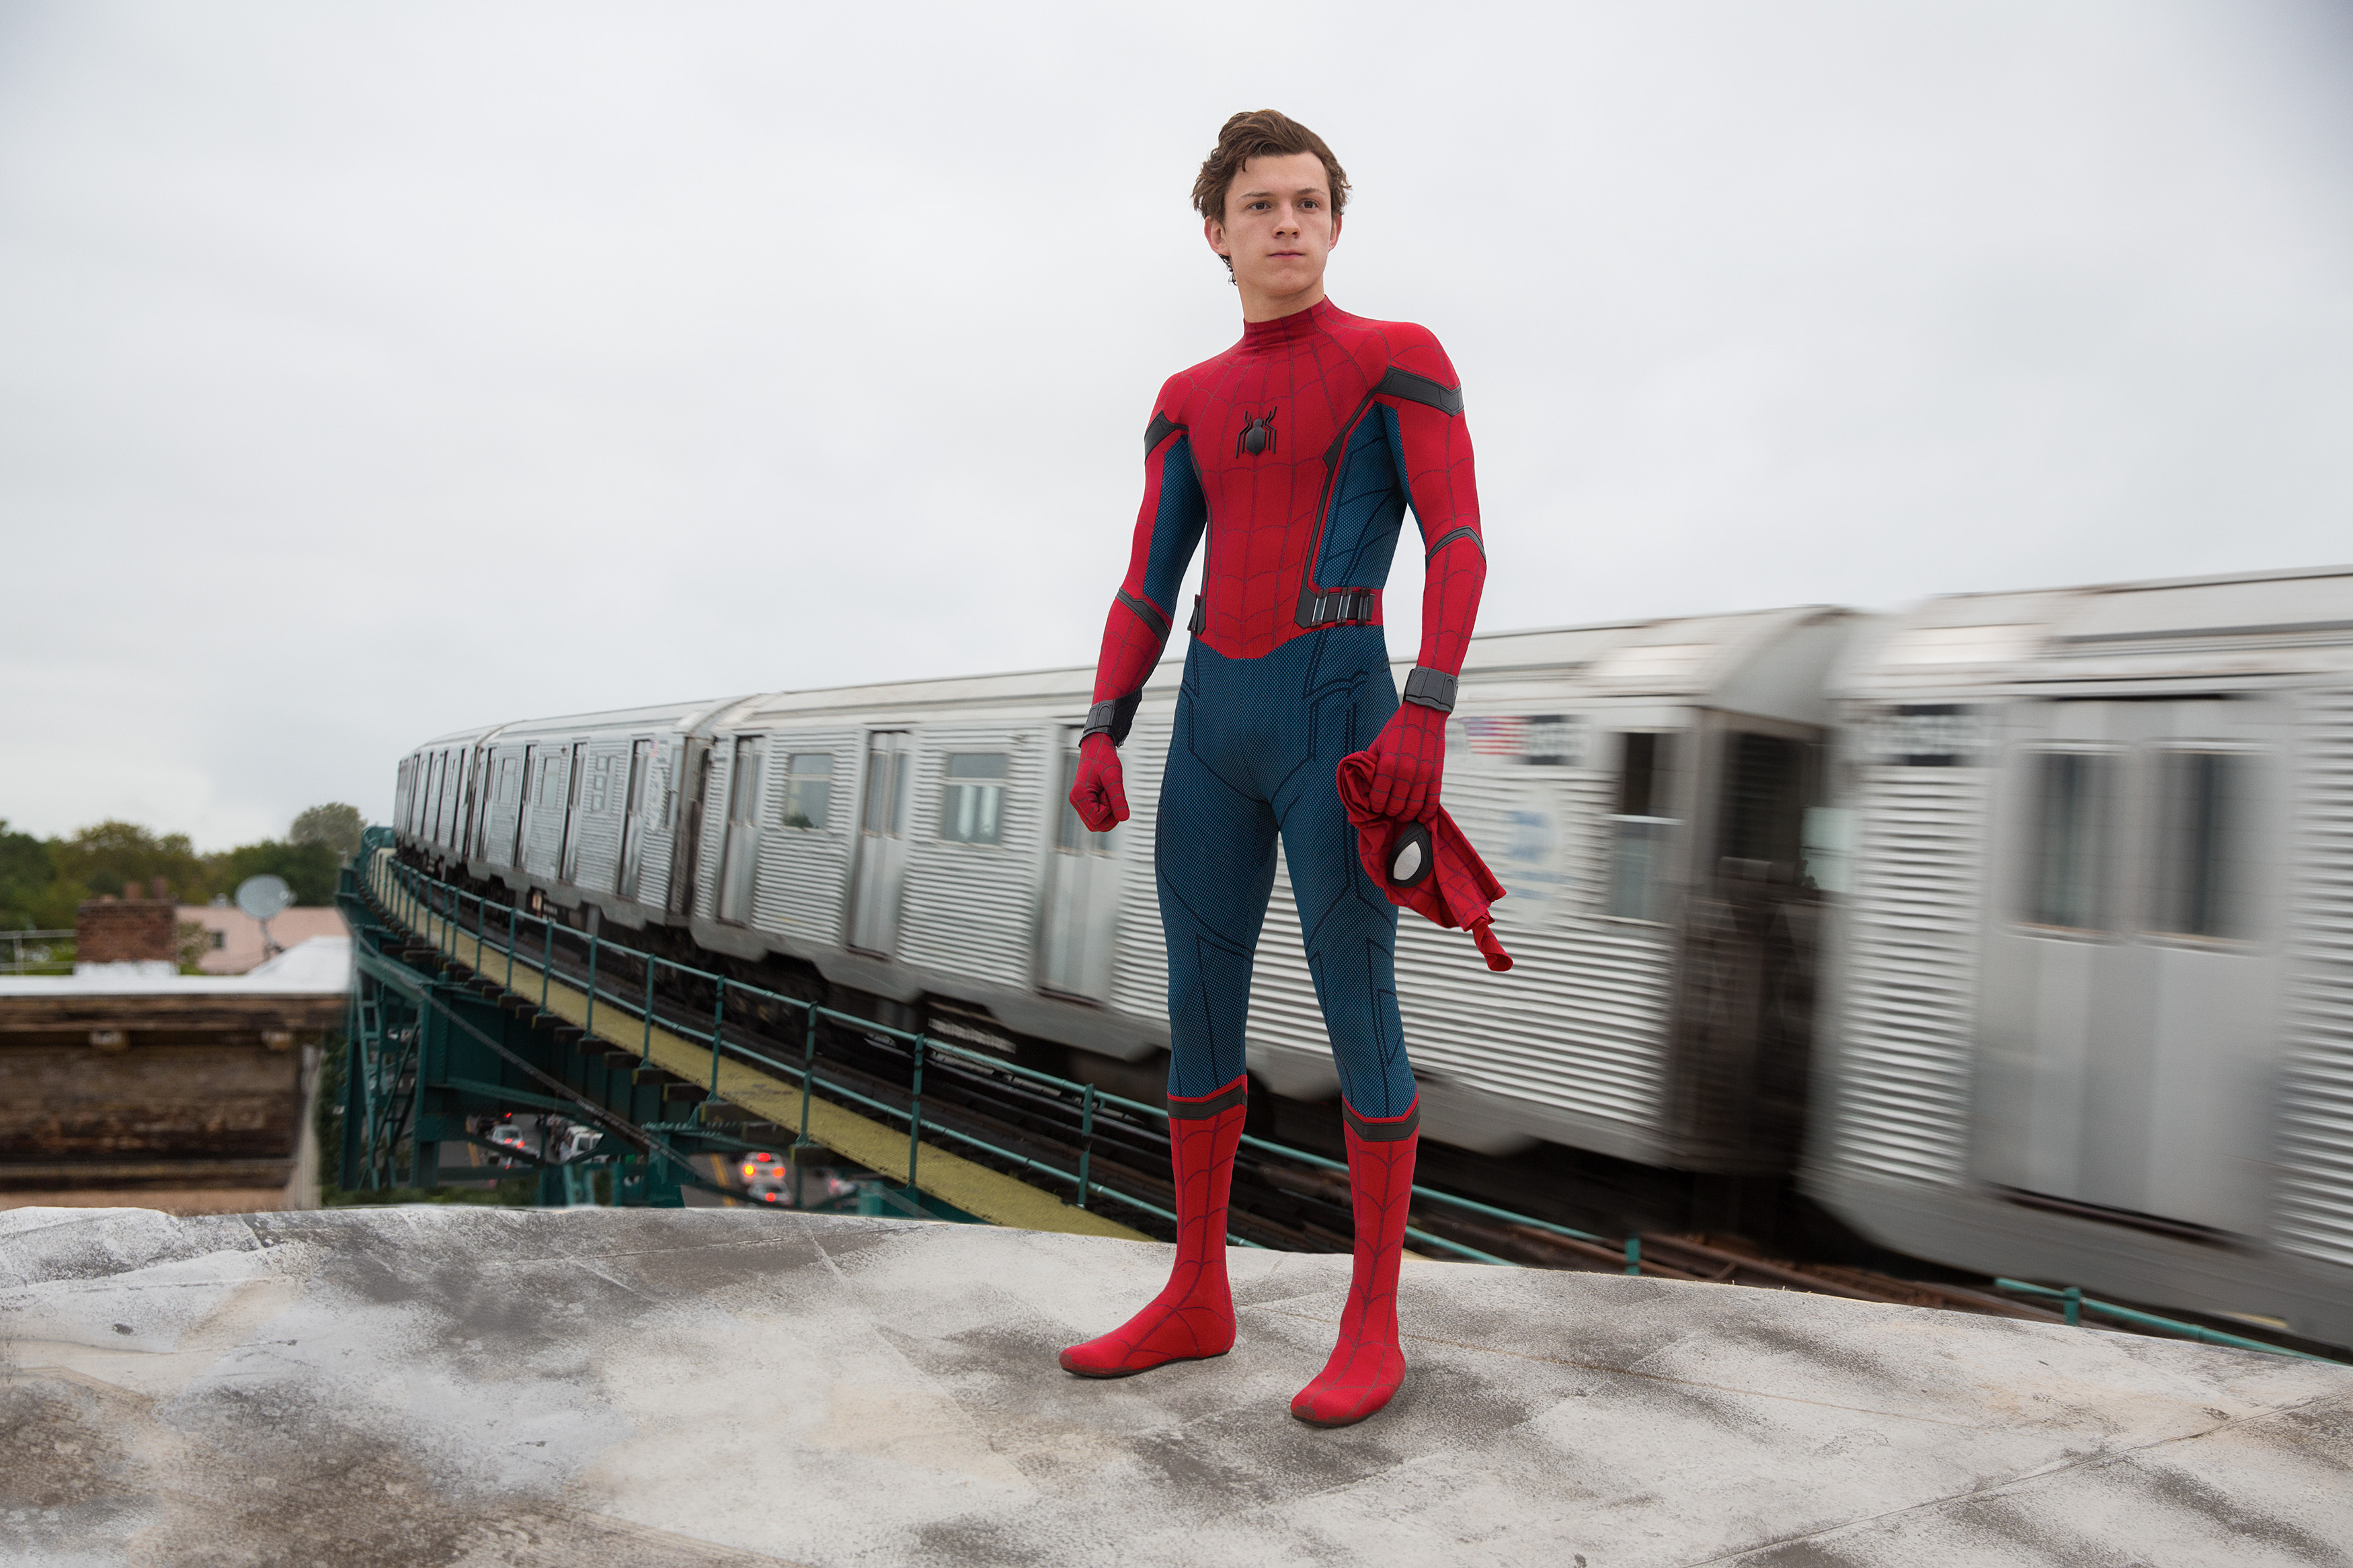 Spider-Man: Homecoming Sequel Gets Official Title Reveal from Tom Holland